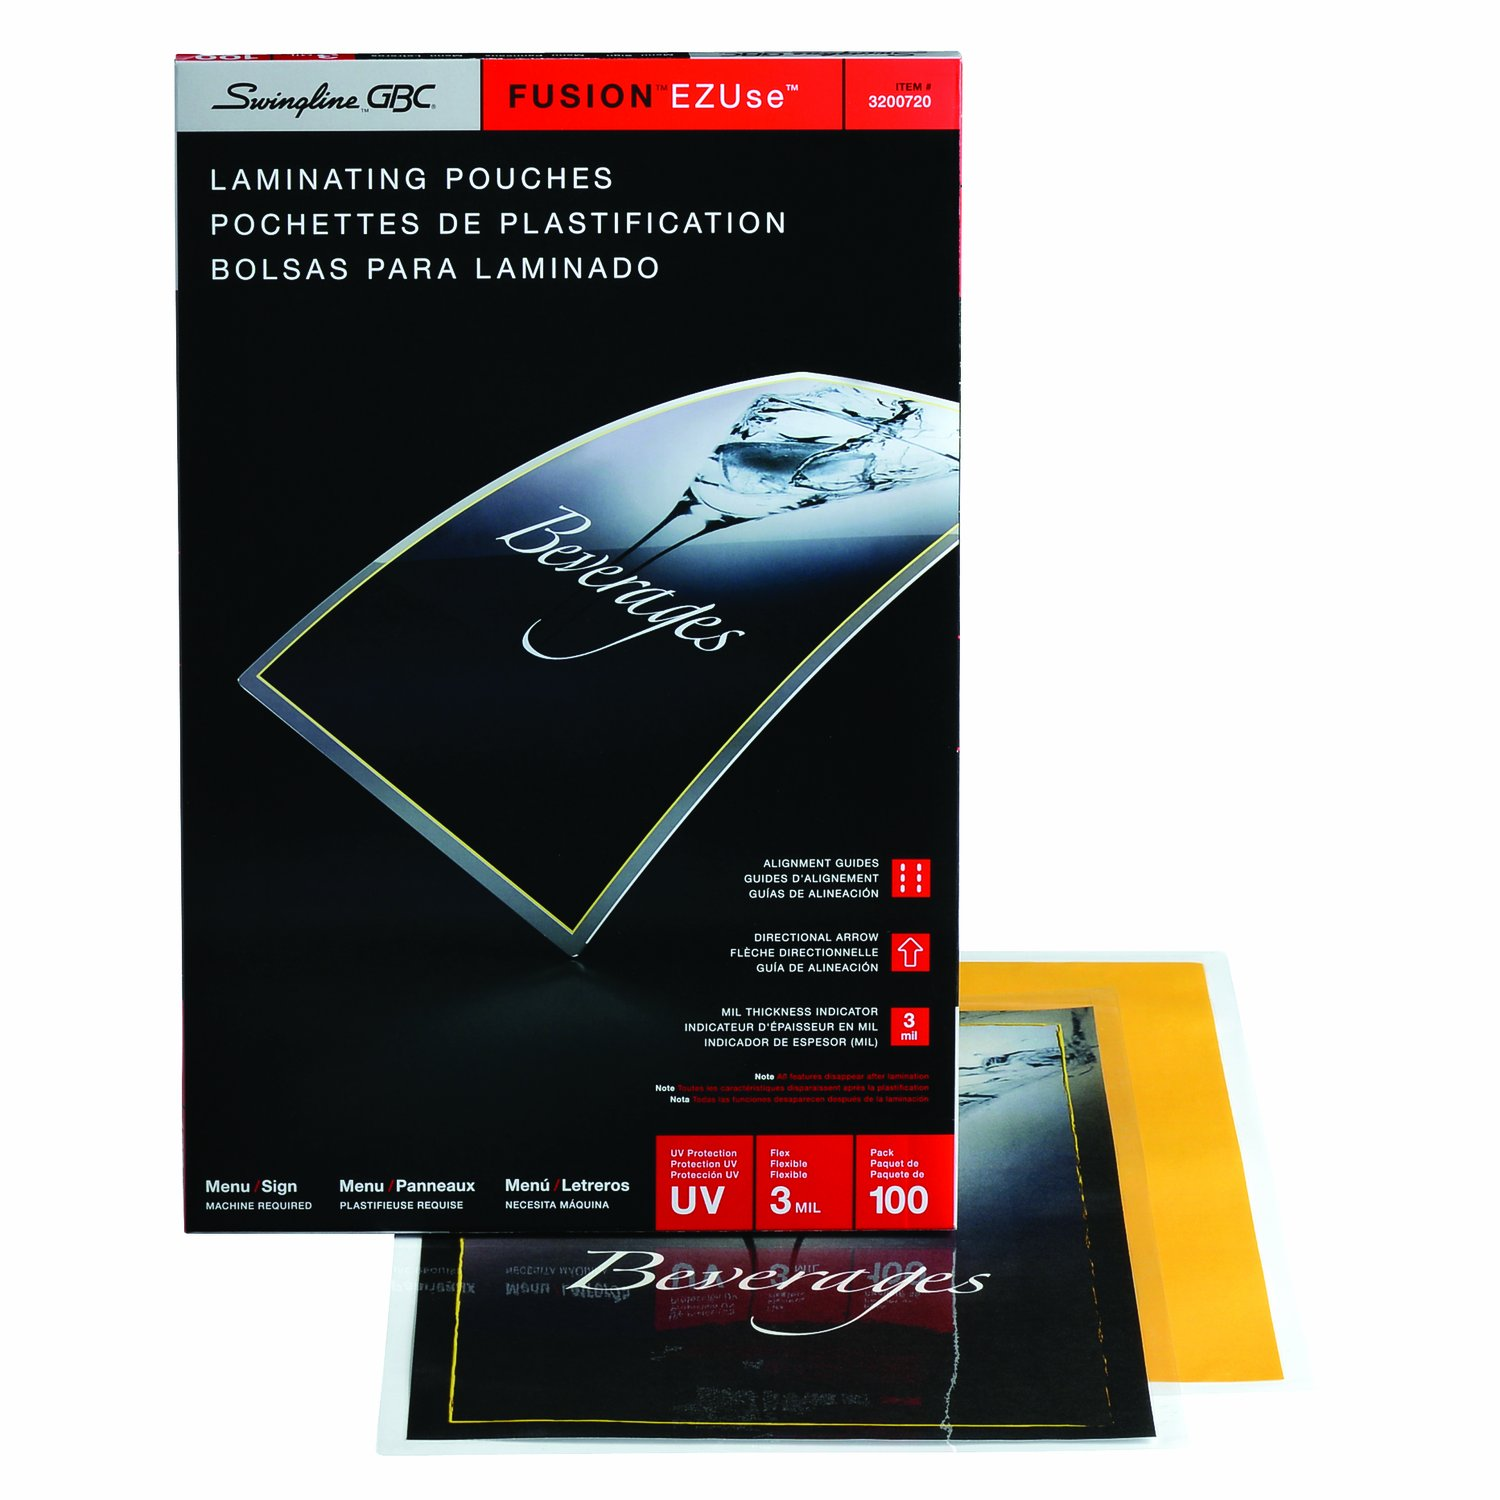 Swingline GBC Thermal Laminating Sheets / Pouches, Menu Size, 3 Mil, EZUse, 100-Count (3200720) by Swingline